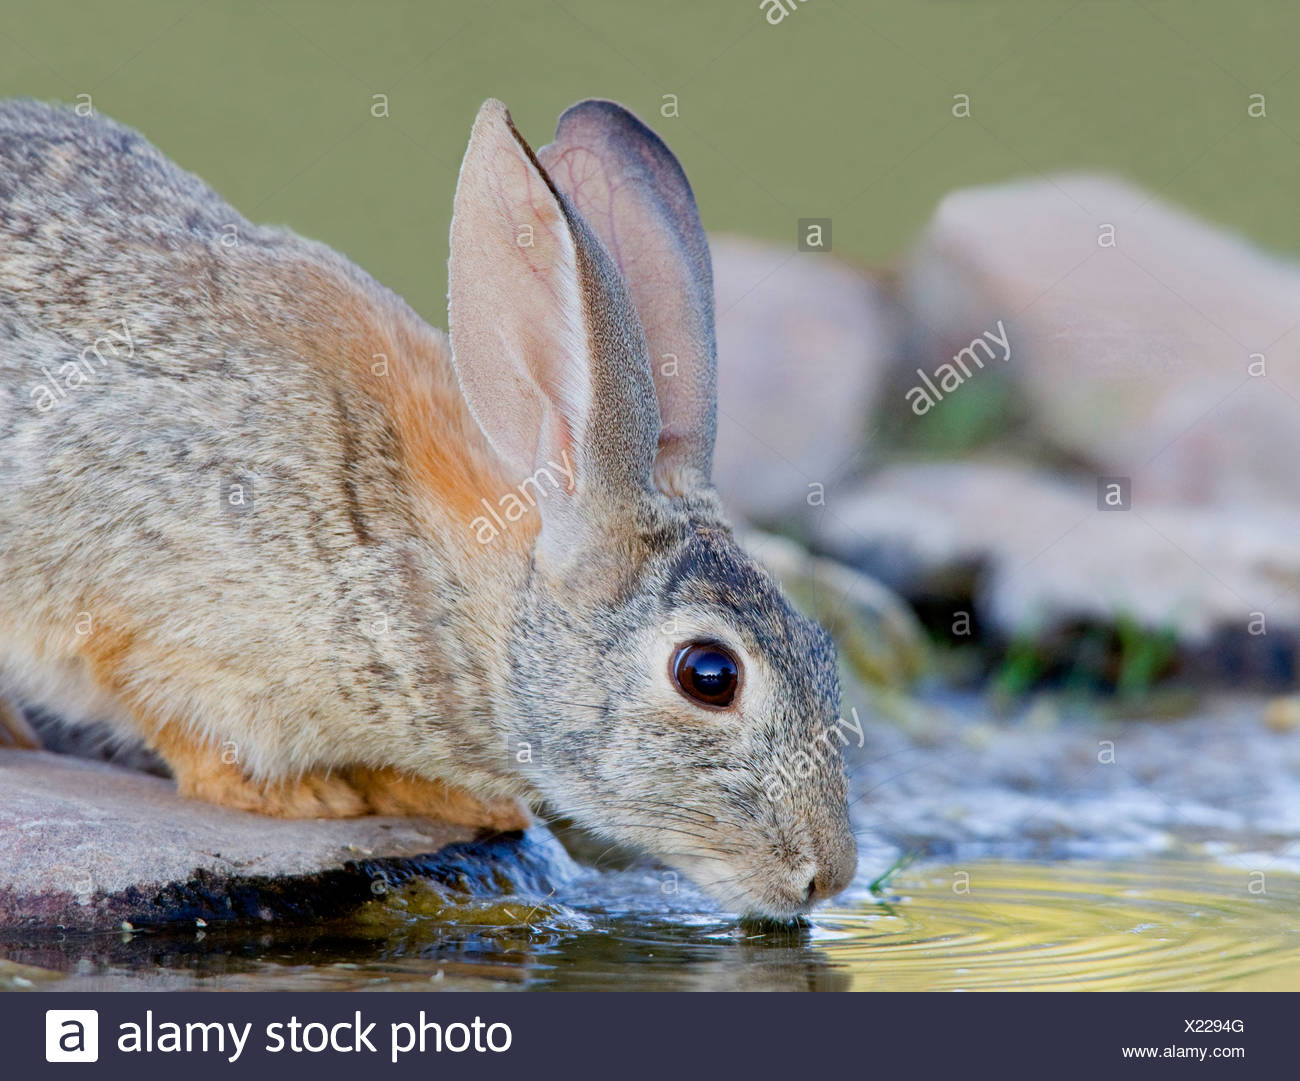 Rabbit (Oryctolagus cuniculus) drinking water from a pond - Stock Image